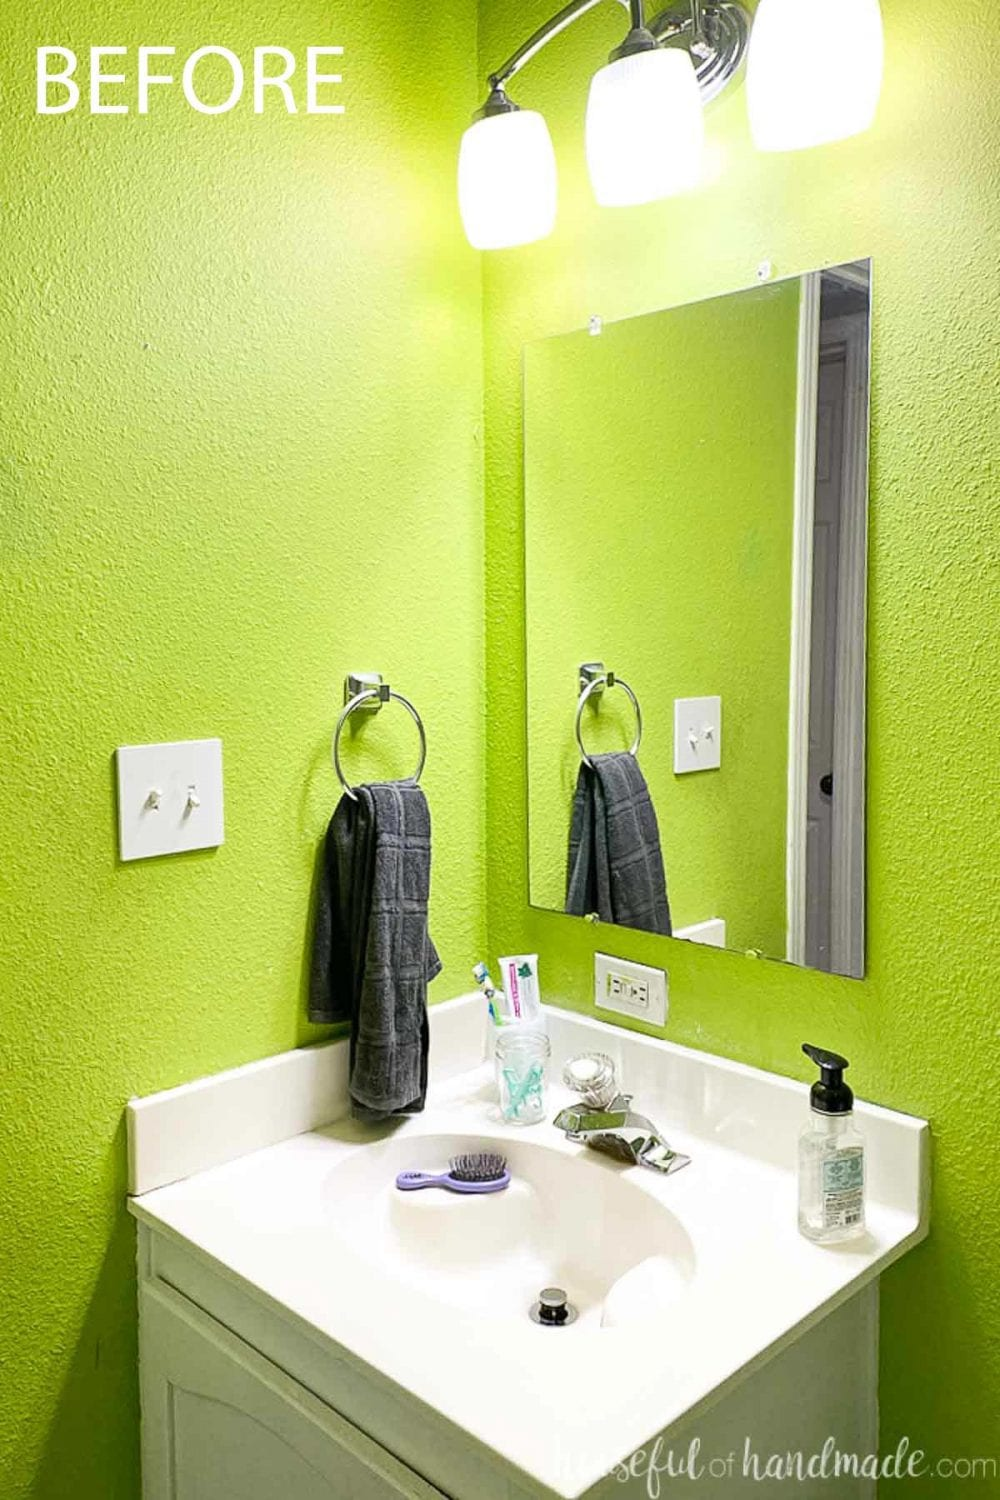 Before photo of the bathroom vanity top with a plain mirror on the wall.